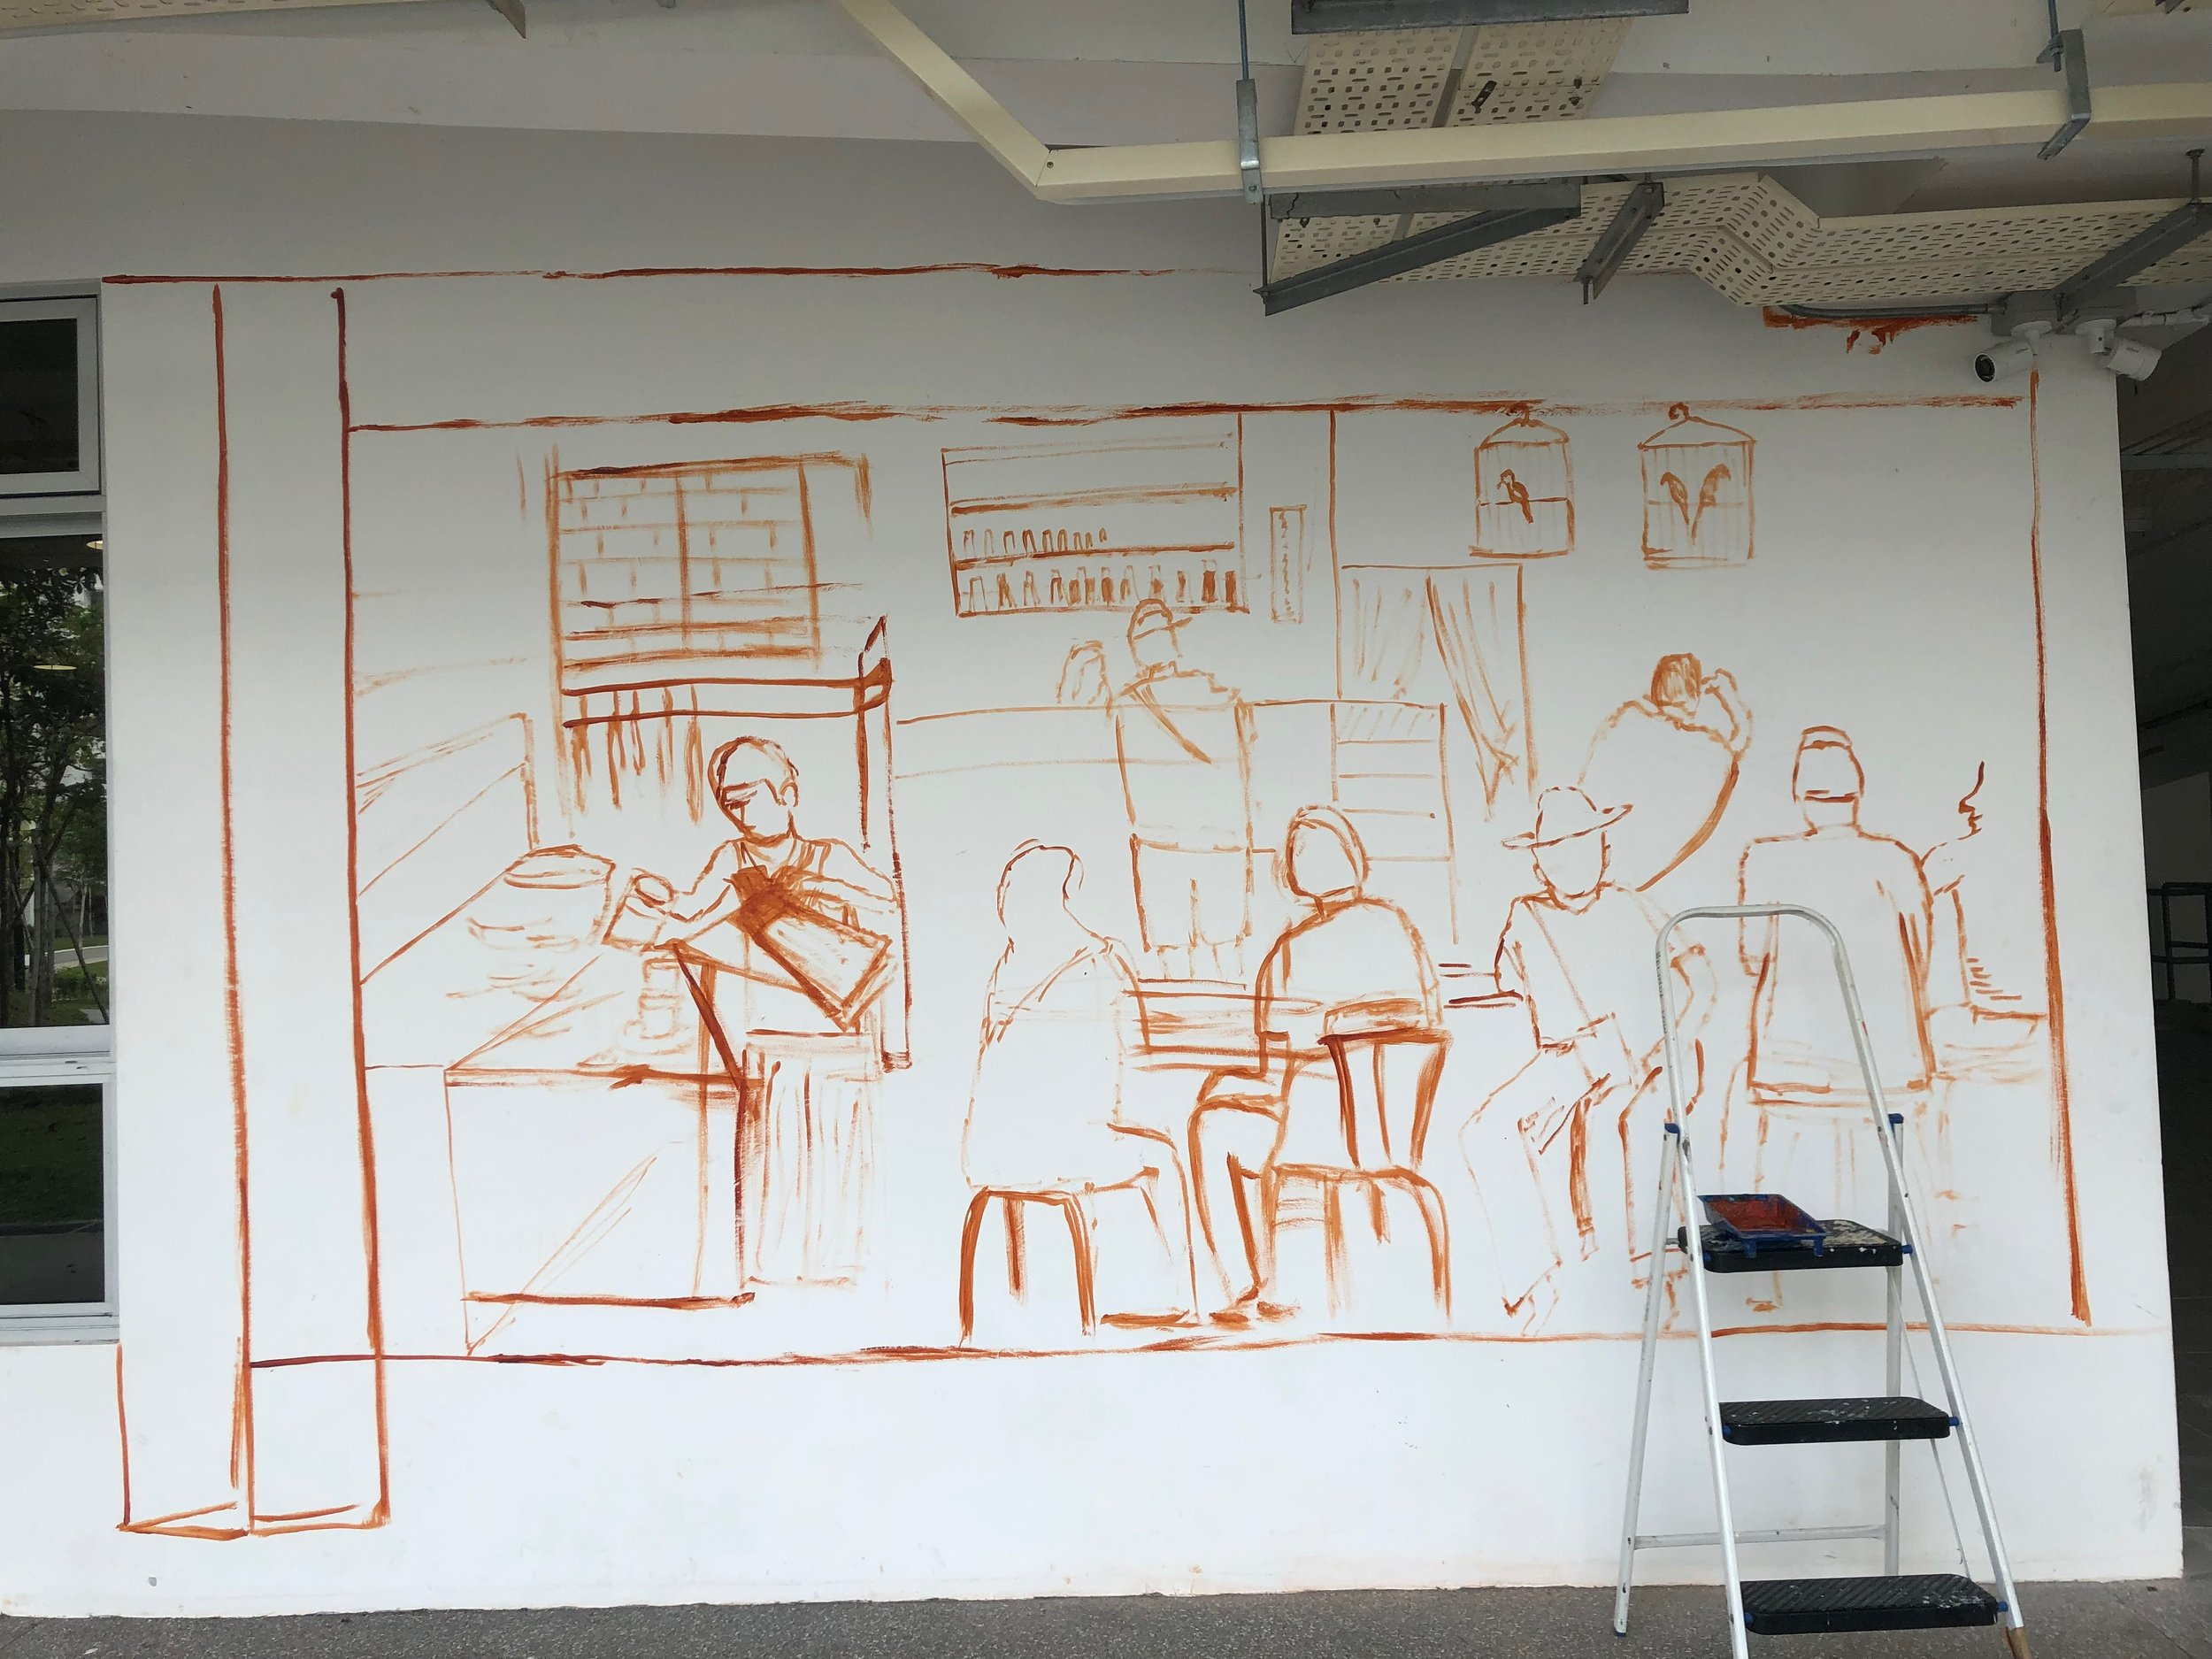 The initial sketch by free-hand this time on the wall. No outlining cos too much time wasted. Just a rough idea will suffice!